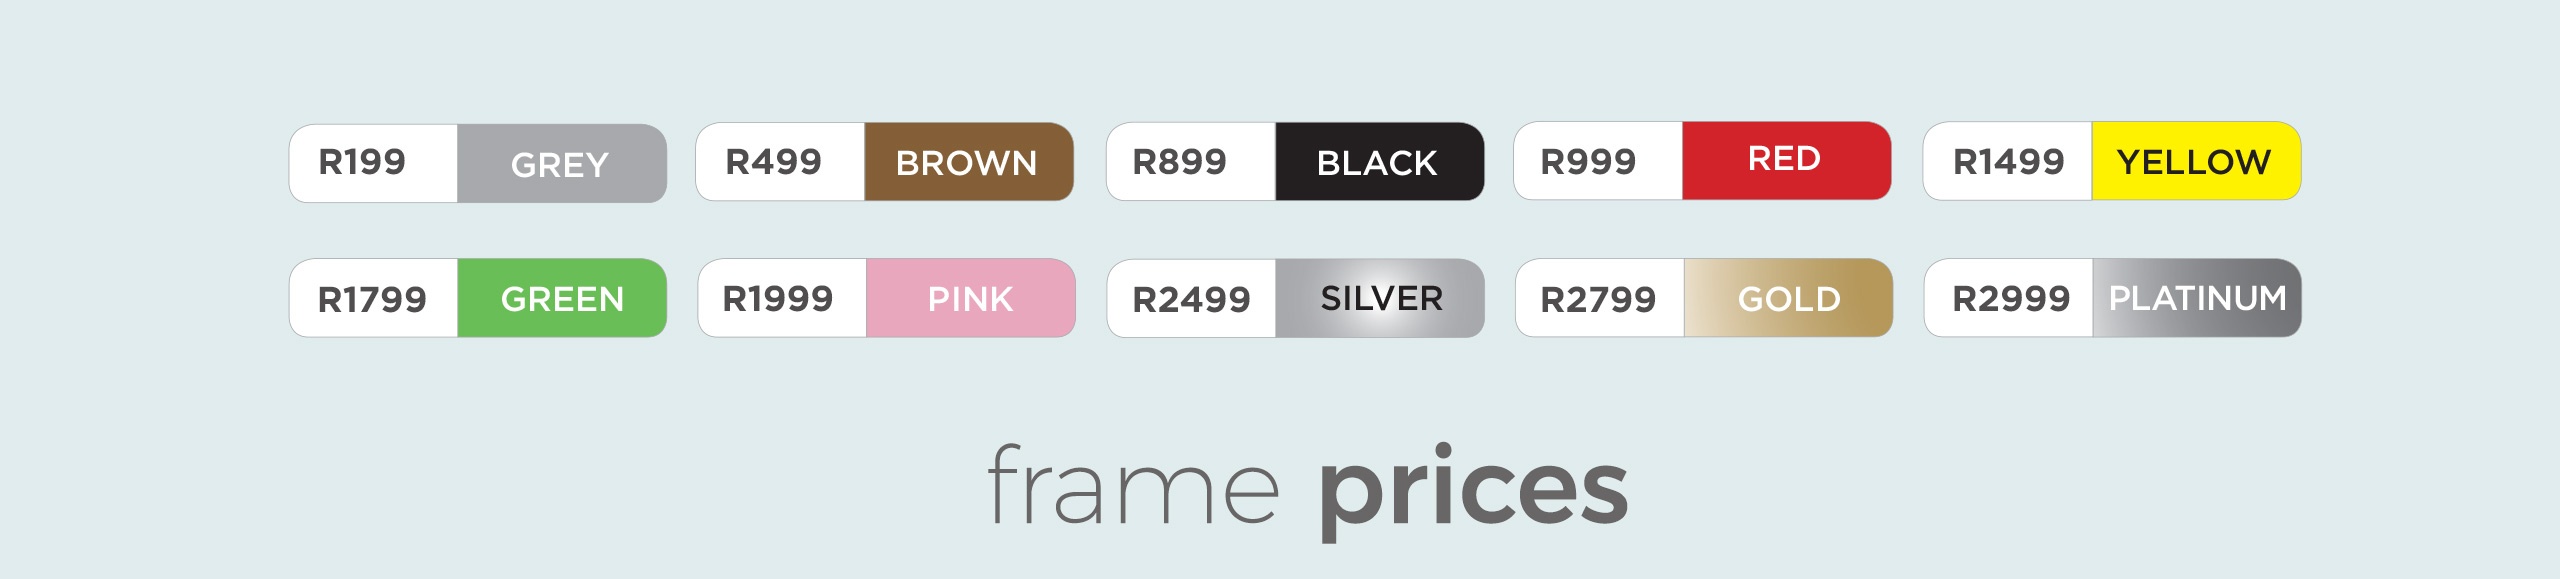 Frame Prices - Offers - Spec-Savers South Africa